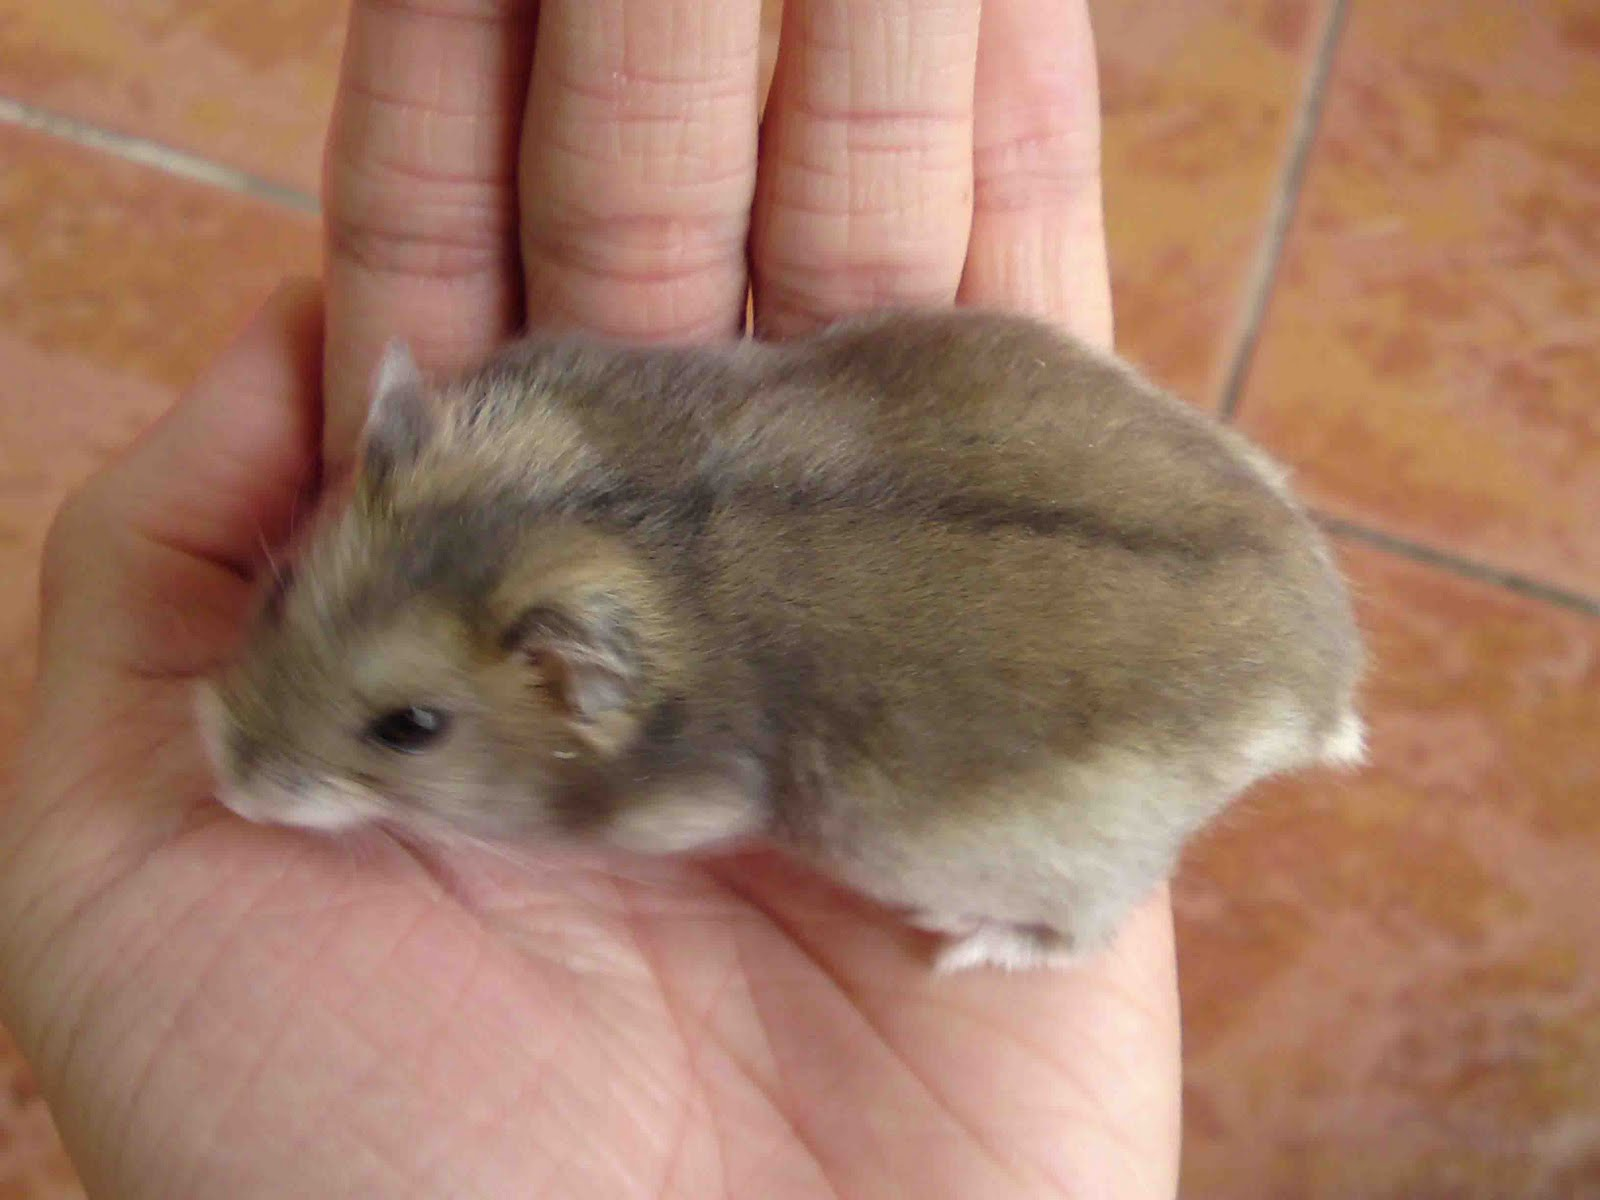 How To Determine a Pregnant Hamster?